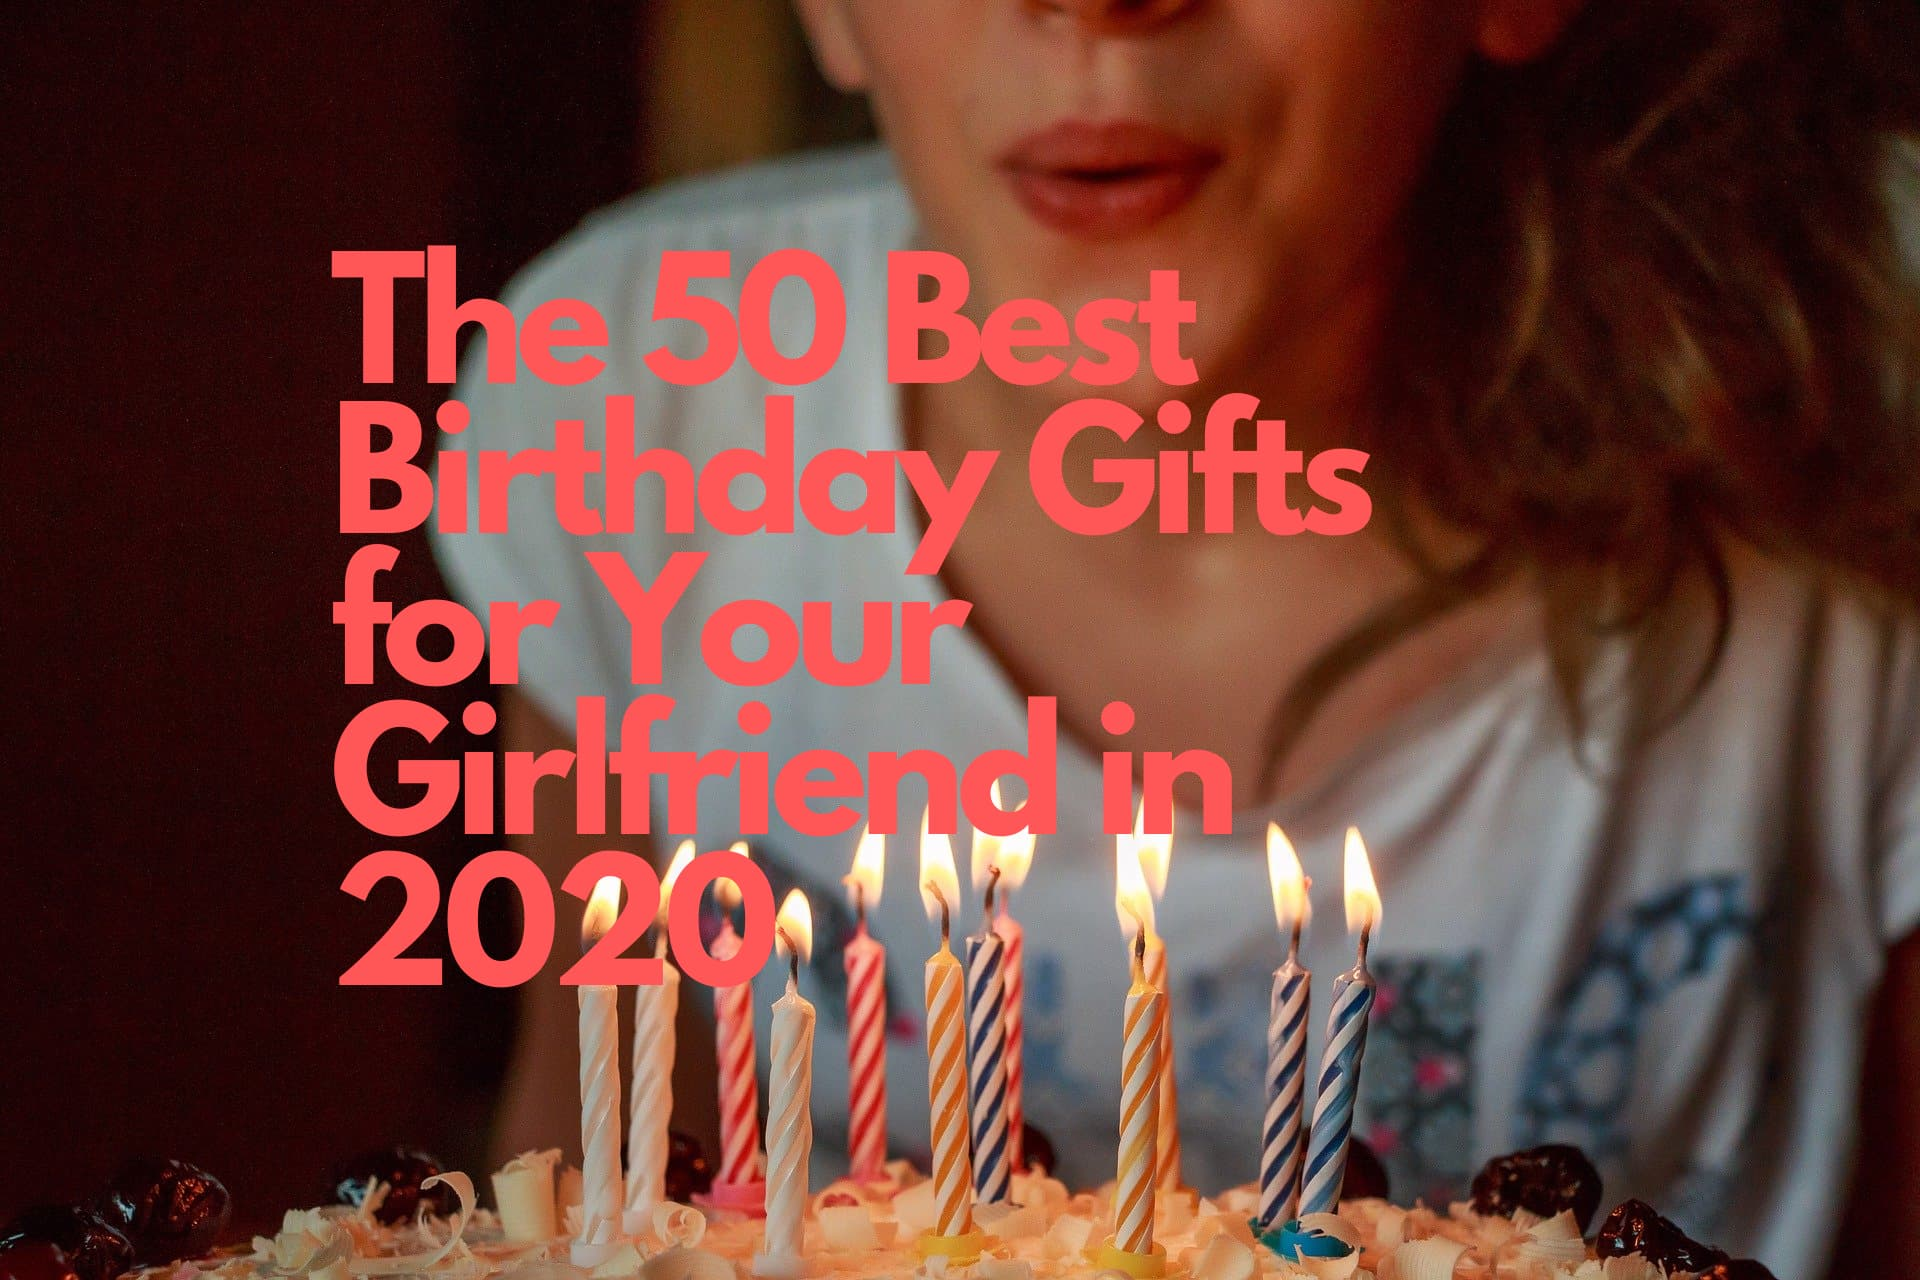 The 50 Best Birthday Gifts for Your Girlfriend in 2020